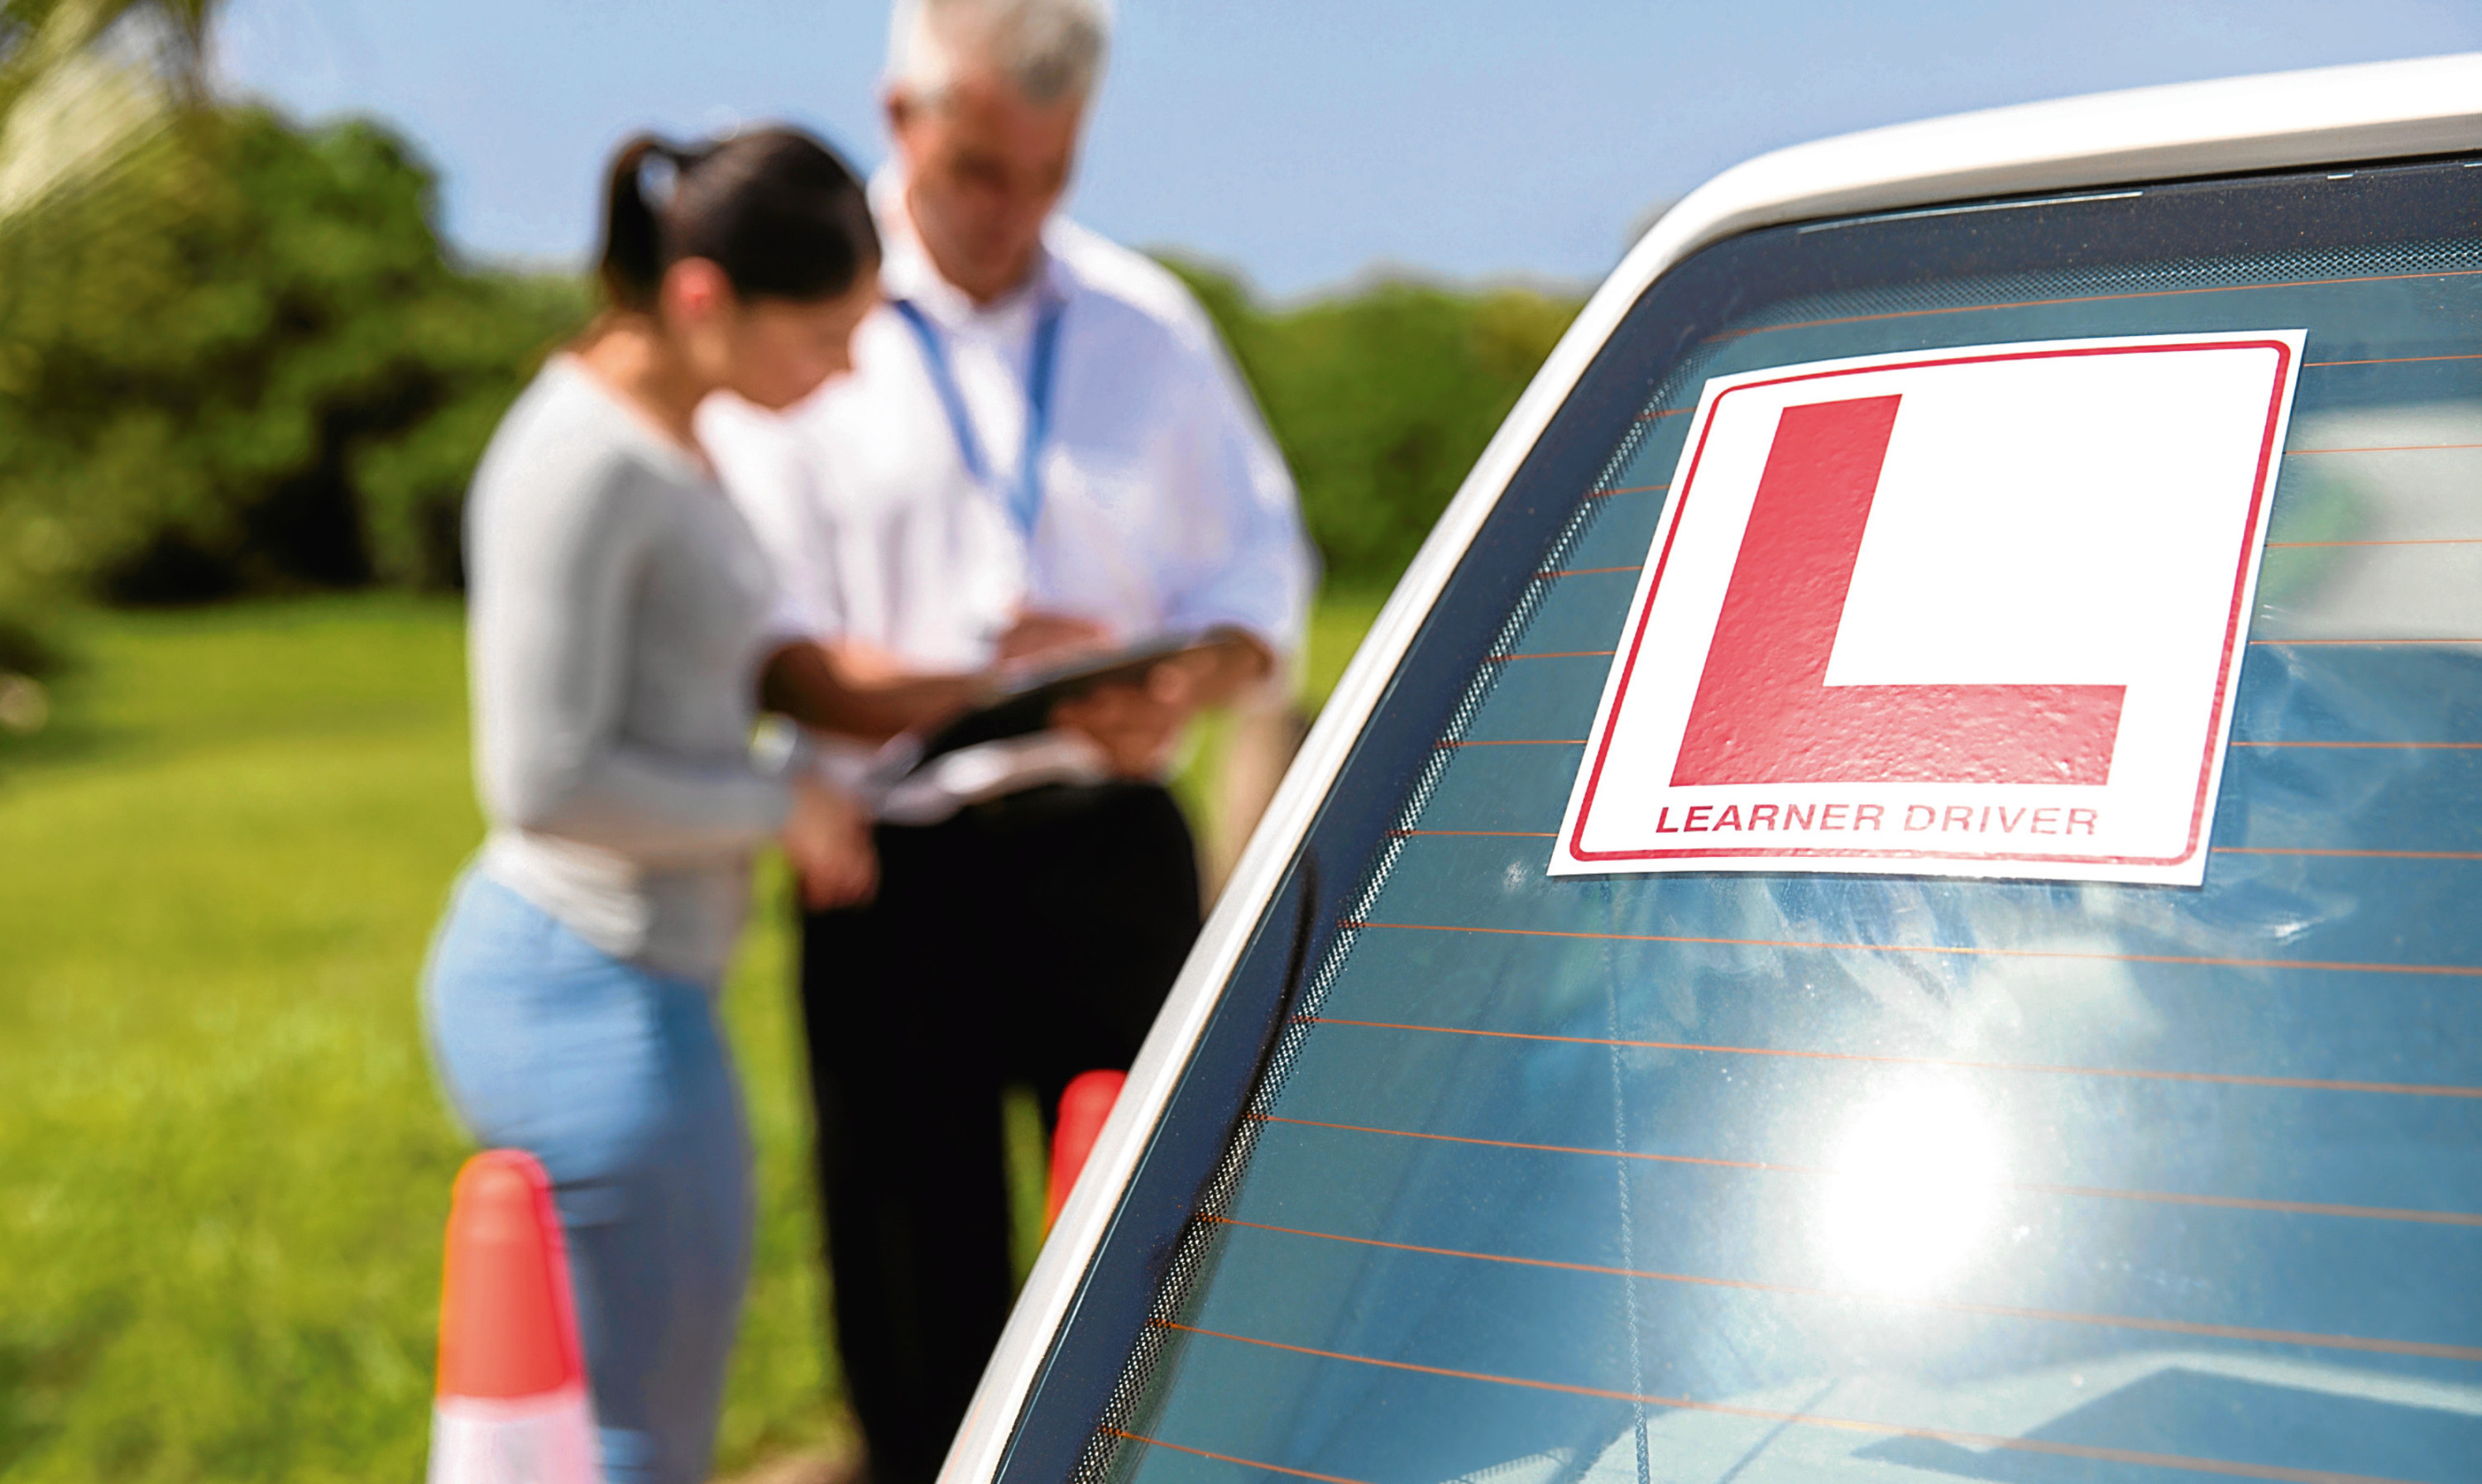 learner driver sign on a car with student and instructor standing behind